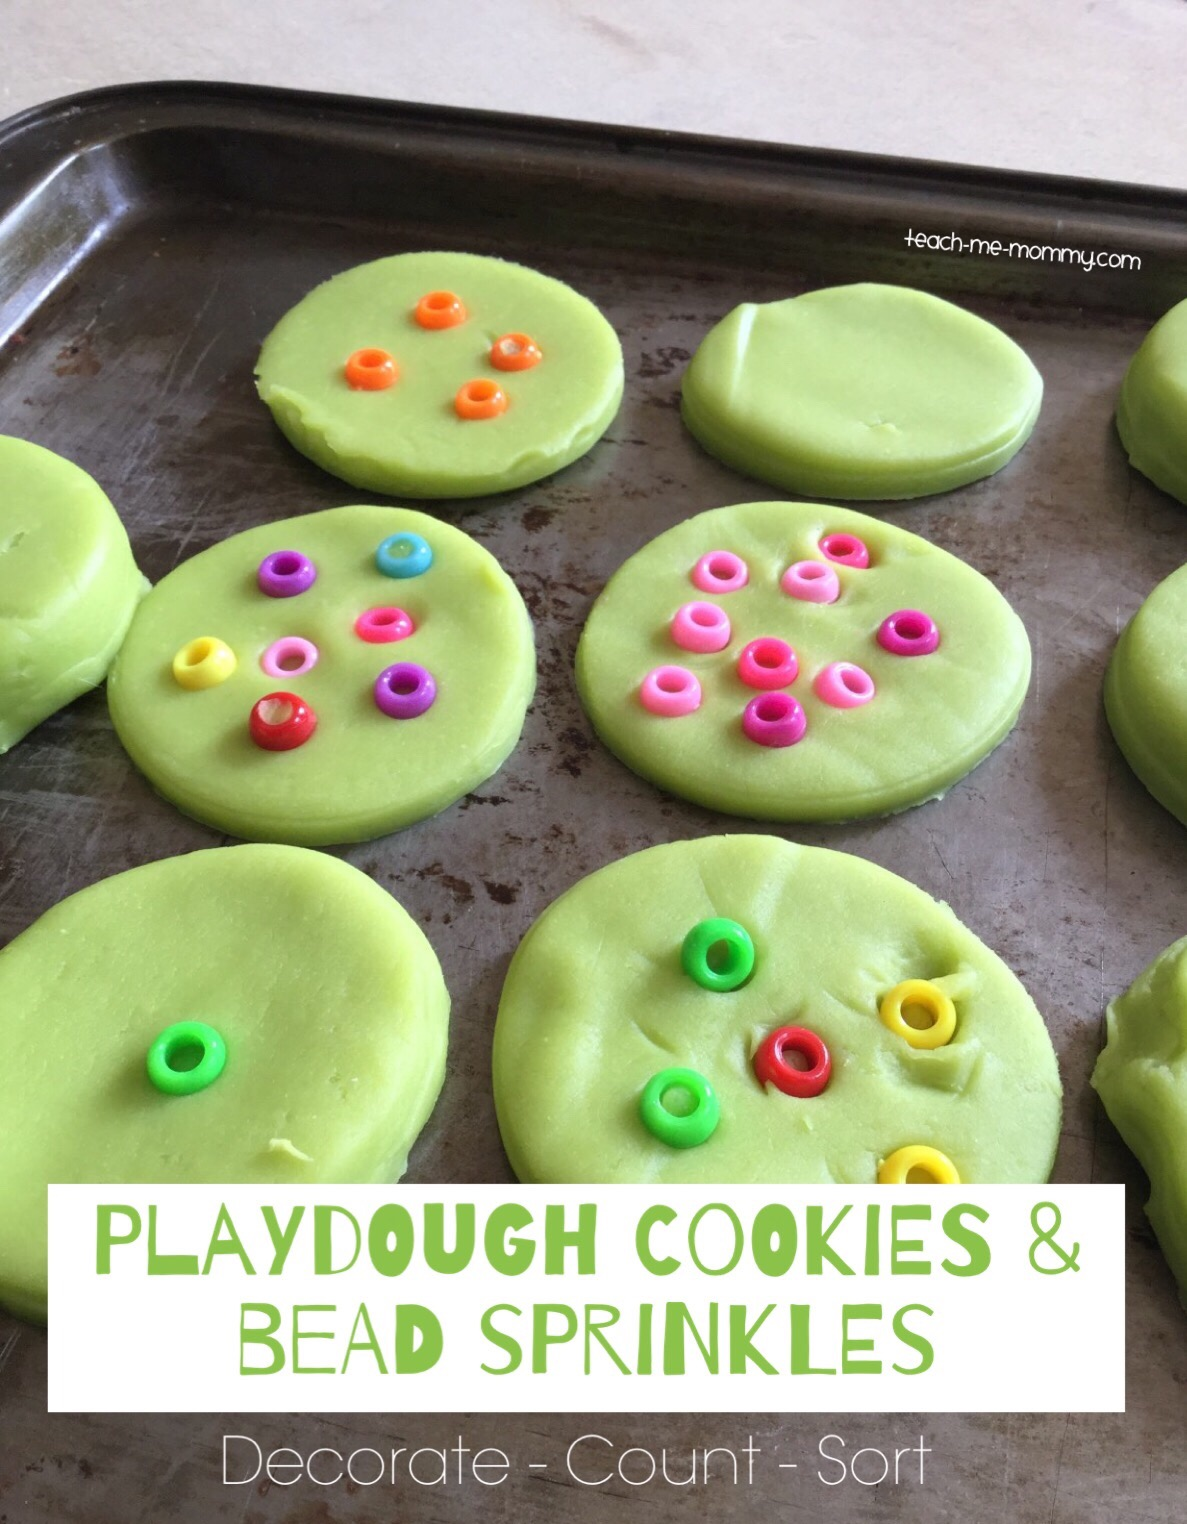 playdough cookies and bead sprinkles